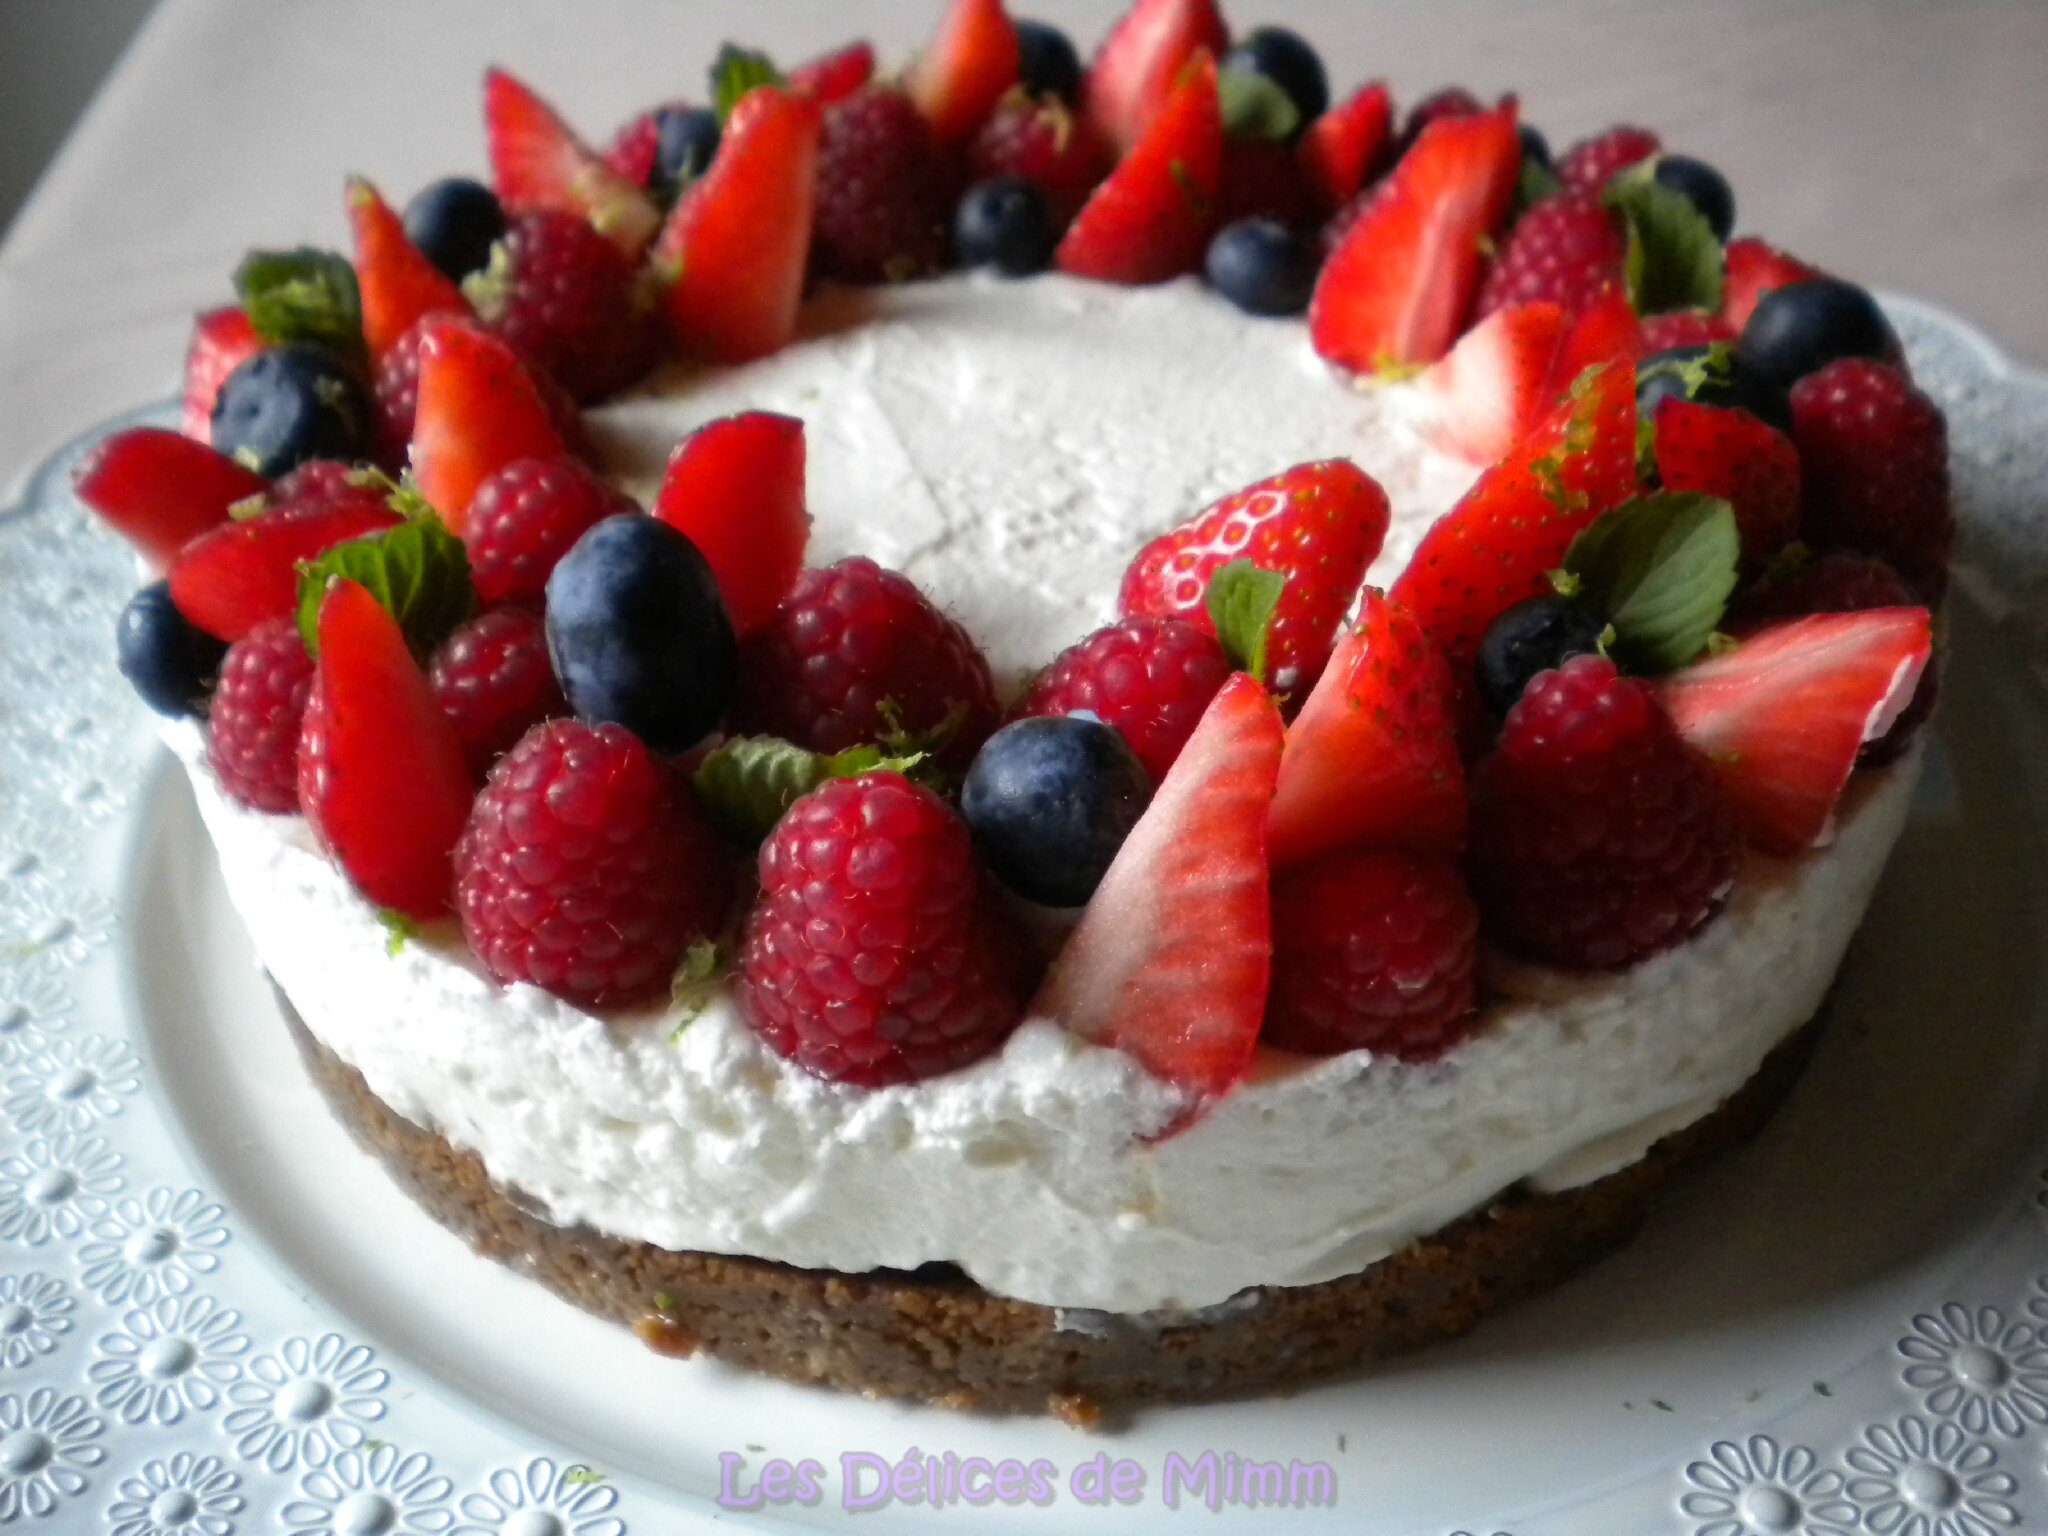 Tarte aux fruits rouges limoncello et sp culoos sans cuisson les d lices de mimm - Chantilly maison sans syphon ...